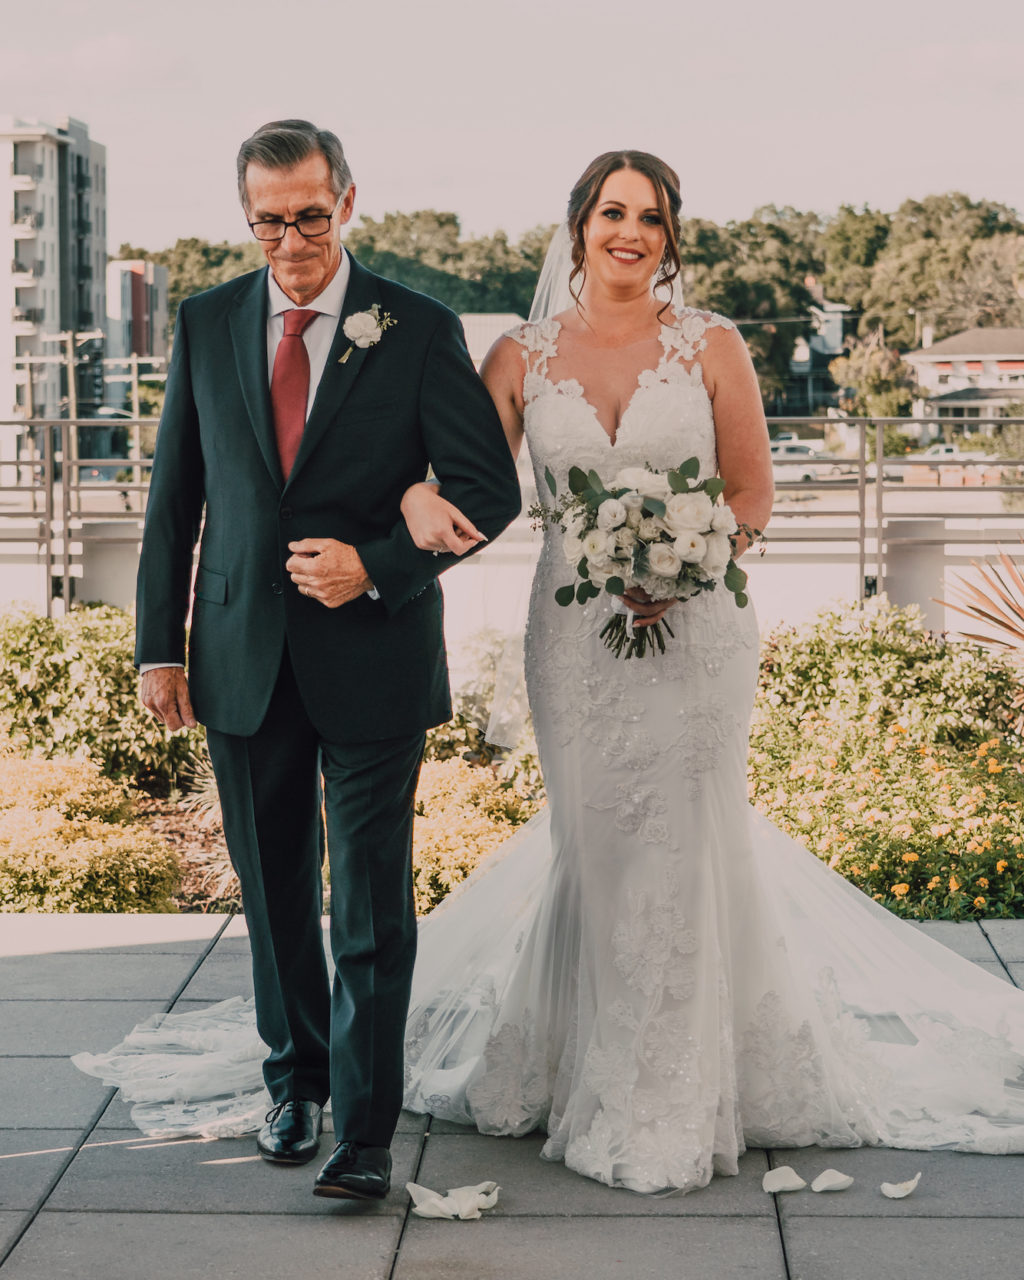 Bride Walking Down the Aisle with Dad at Rooftop Wedding Ceremony | Lace Sheath V Neck Illusion Sleeve Bridal Gown Wedding Dress with Sheer Embroidered Train | Simple White Rose Wedding Bouquet with Eucalyptus Greenery